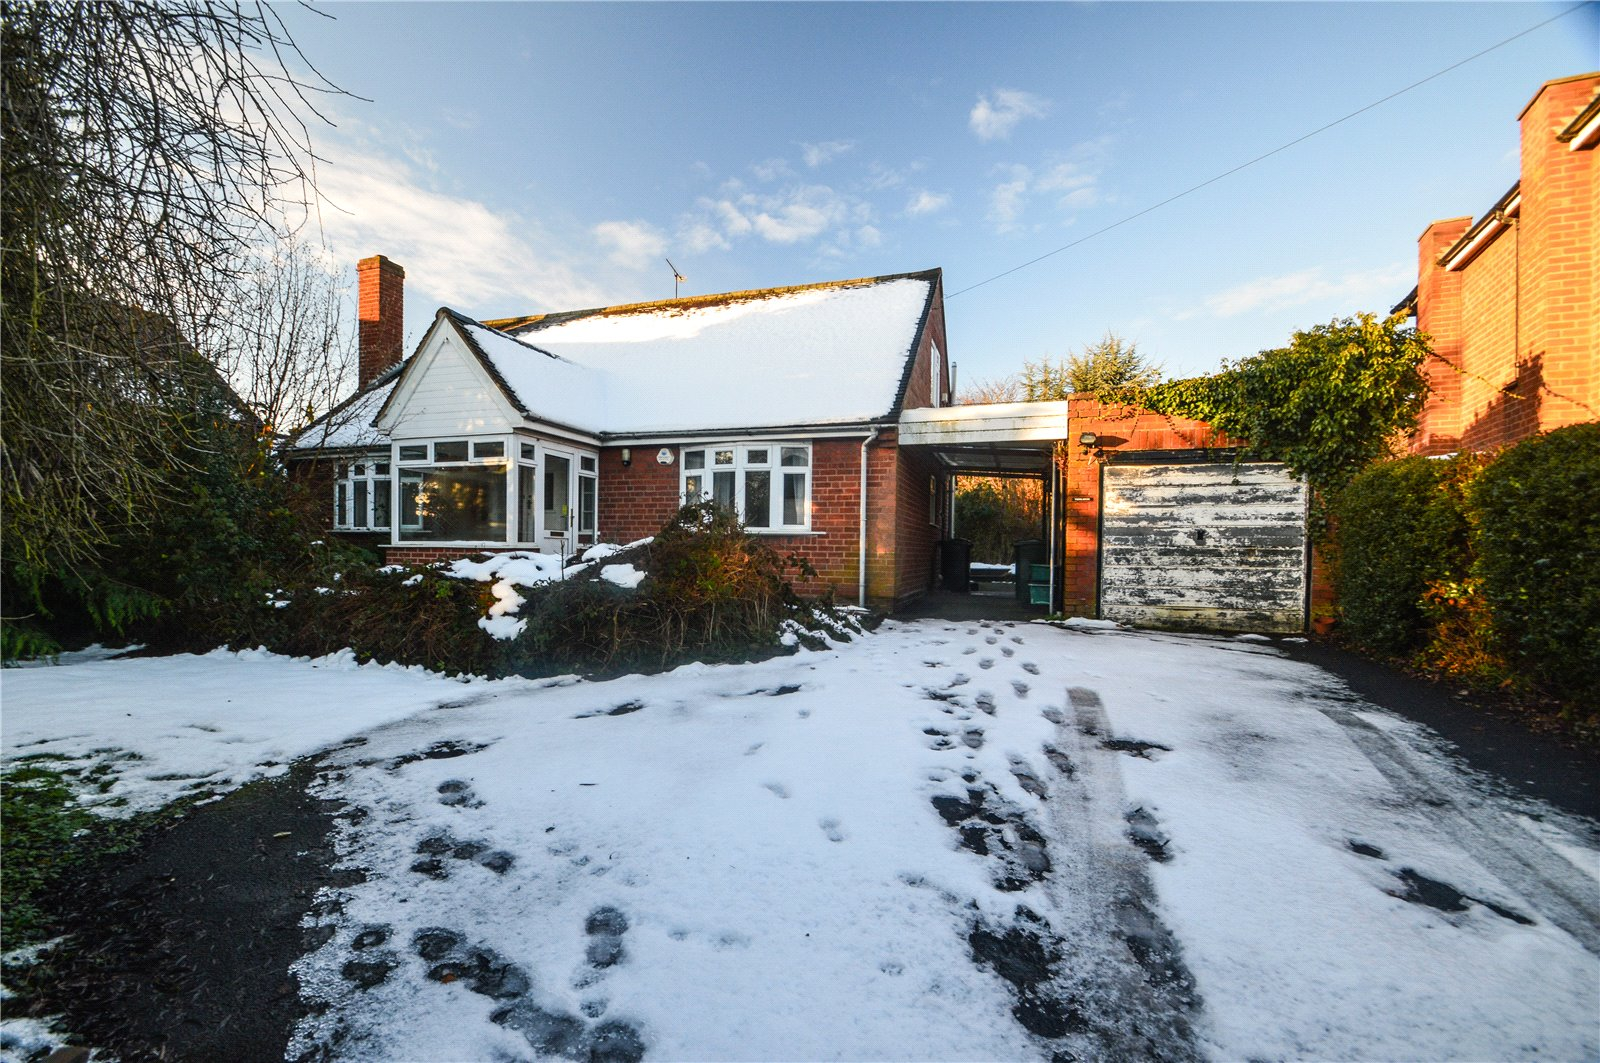 3 Bedrooms Detached Bungalow for sale in Thirlmere, New Road, Cleobury Mortimer, Kidderminster, Shropshire, DY14